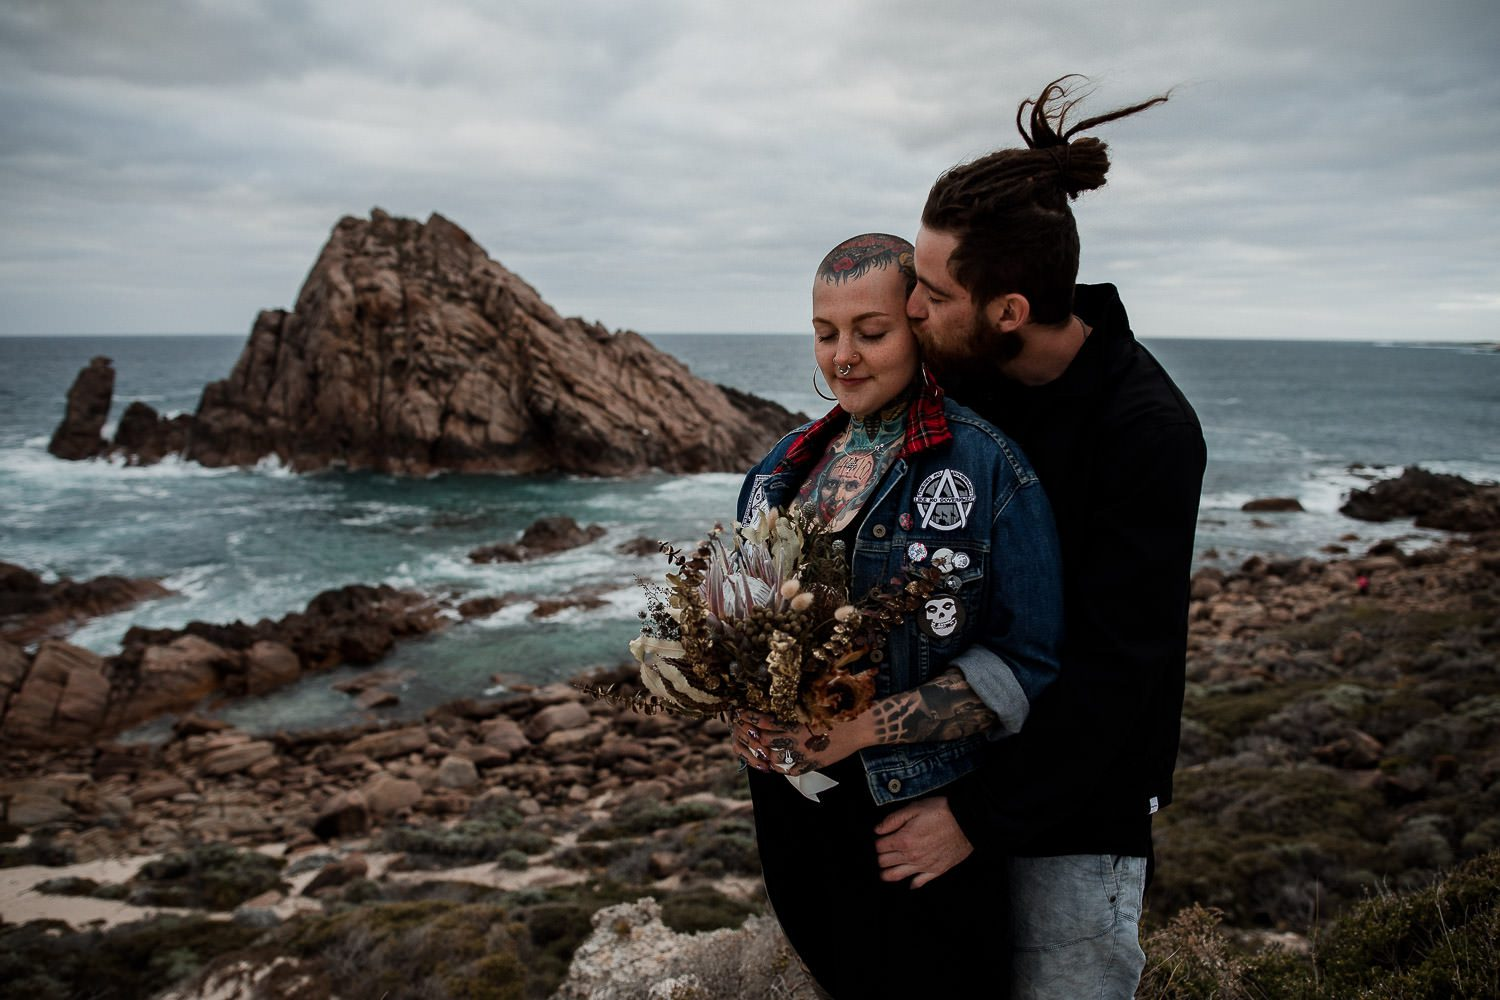 20181130-183905-1X9A5249-Sugarloaf-Rock-Maddy-Kyle-Surprise-Proposal